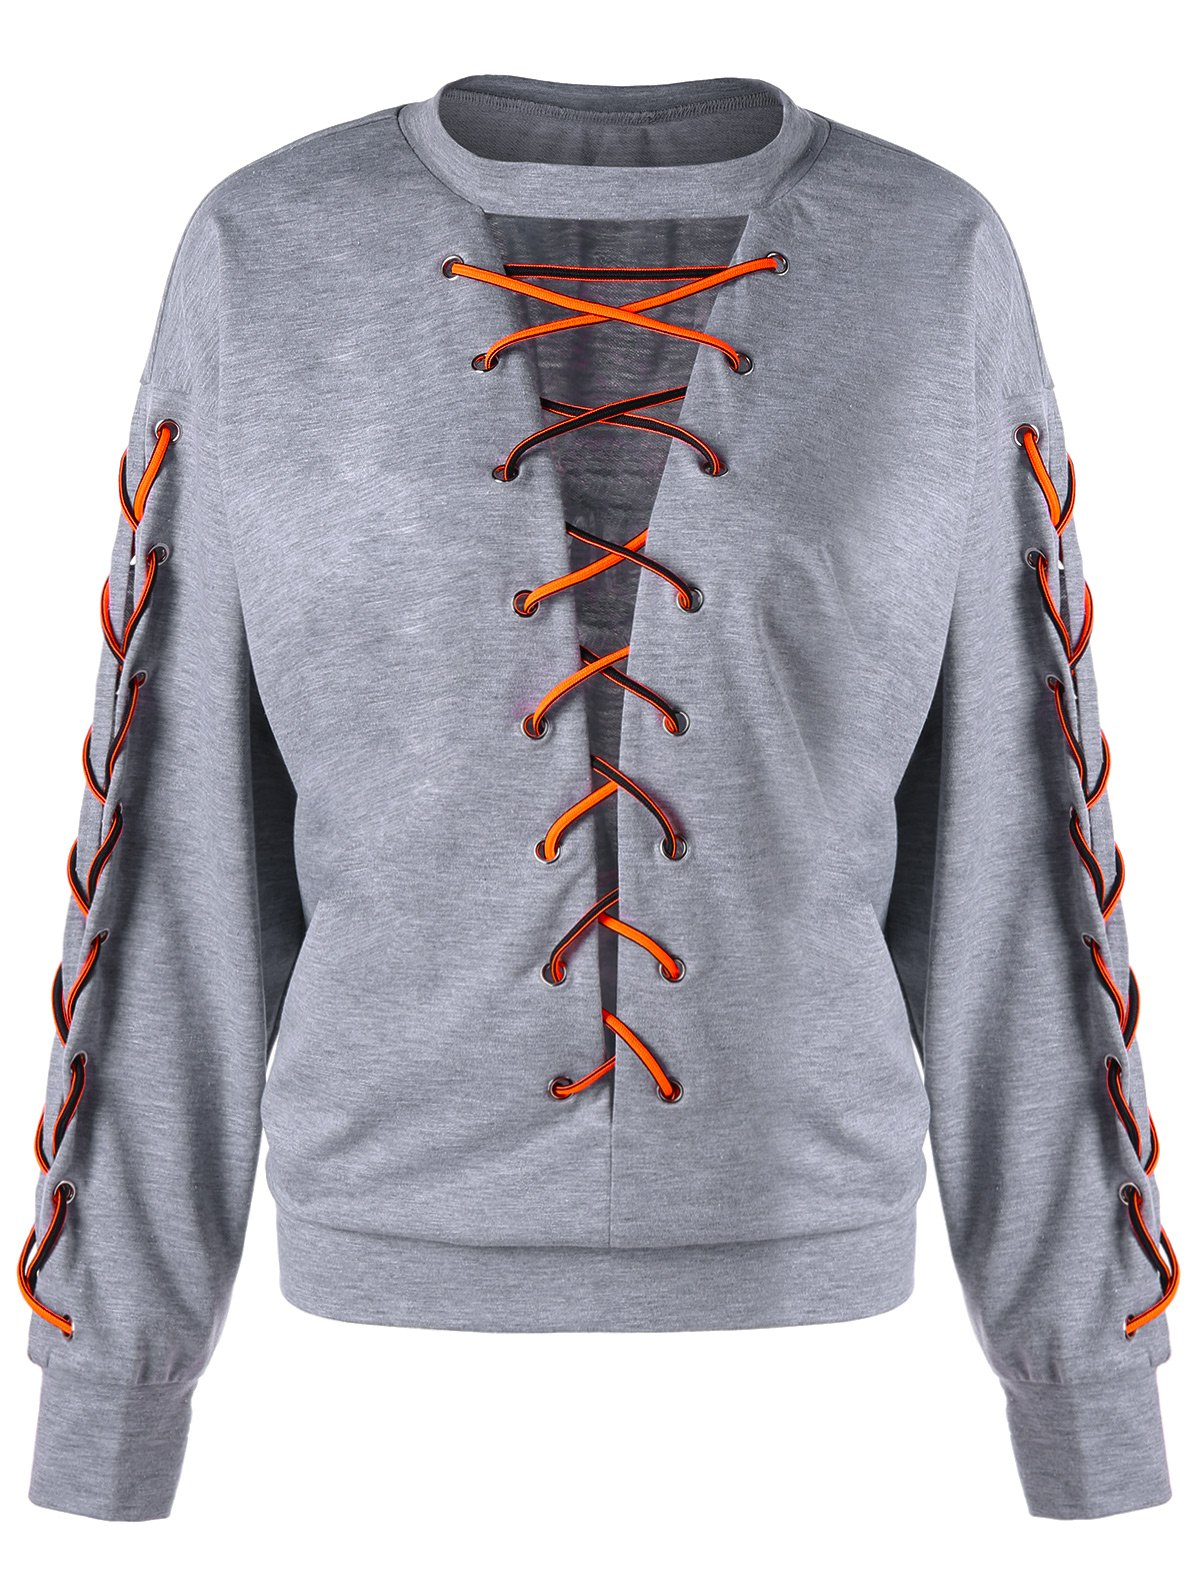 Plus Size Low Cut Lace Up SweatshirtWOMEN<br><br>Size: XL; Color: LIGHT GREY; Material: Polyester,Spandex; Shirt Length: Regular; Sleeve Length: Full; Style: Fashion; Pattern Style: Others; Season: Fall,Spring; Weight: 0.3890kg; Package Contents: 1 x Sweatshirt;